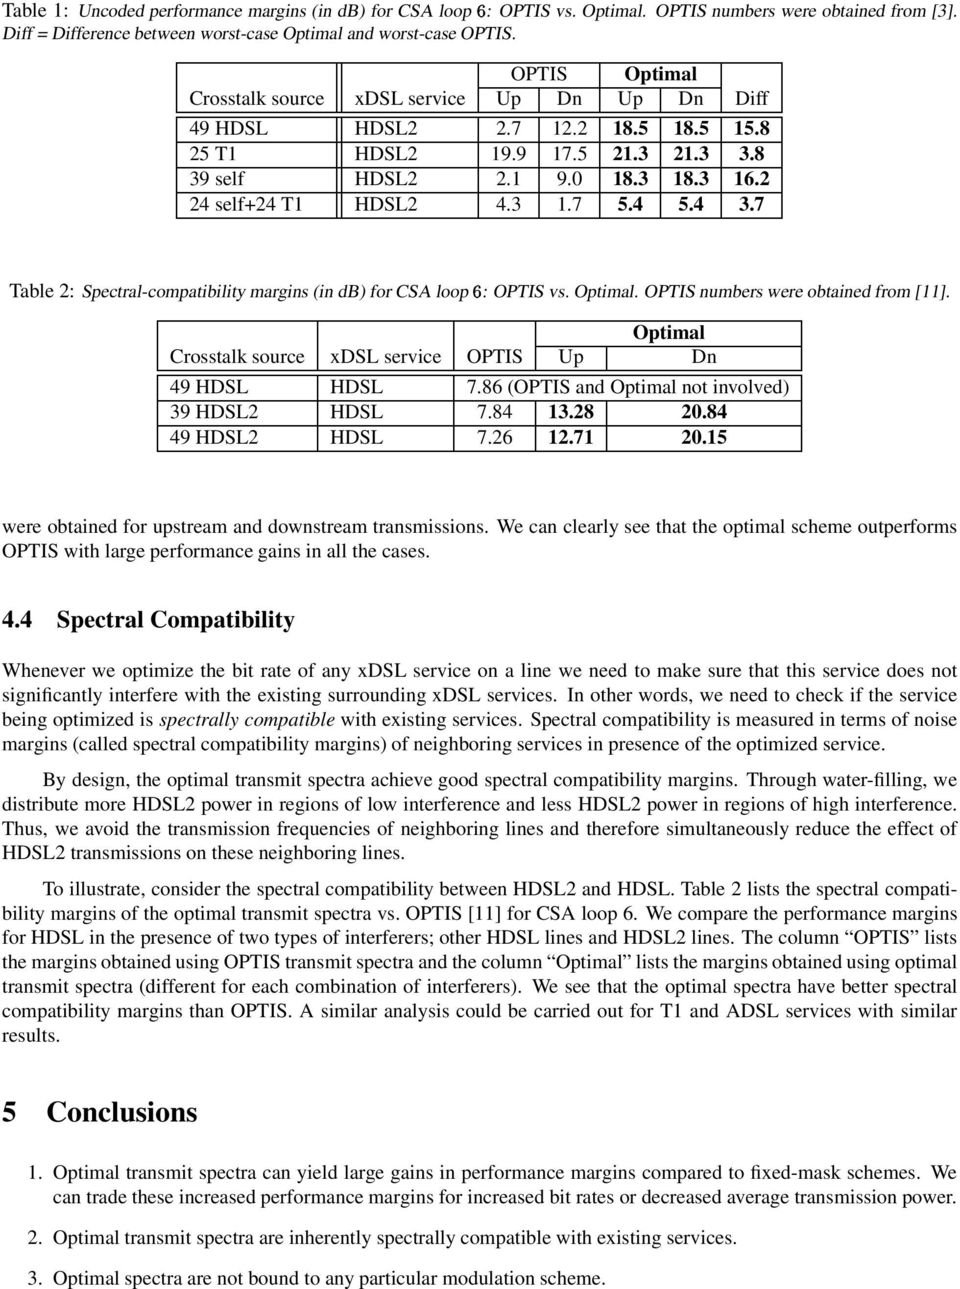 4 5.4 3.7 Table 2: Spectral-compatibility margins (in db) for CSA loop E : OPTIS vs. Optimal. OPTIS numbers were obtained from [11]. Optimal Crosstalk source xdsl service OPTIS Up Dn 49 HDSL HDSL 7.